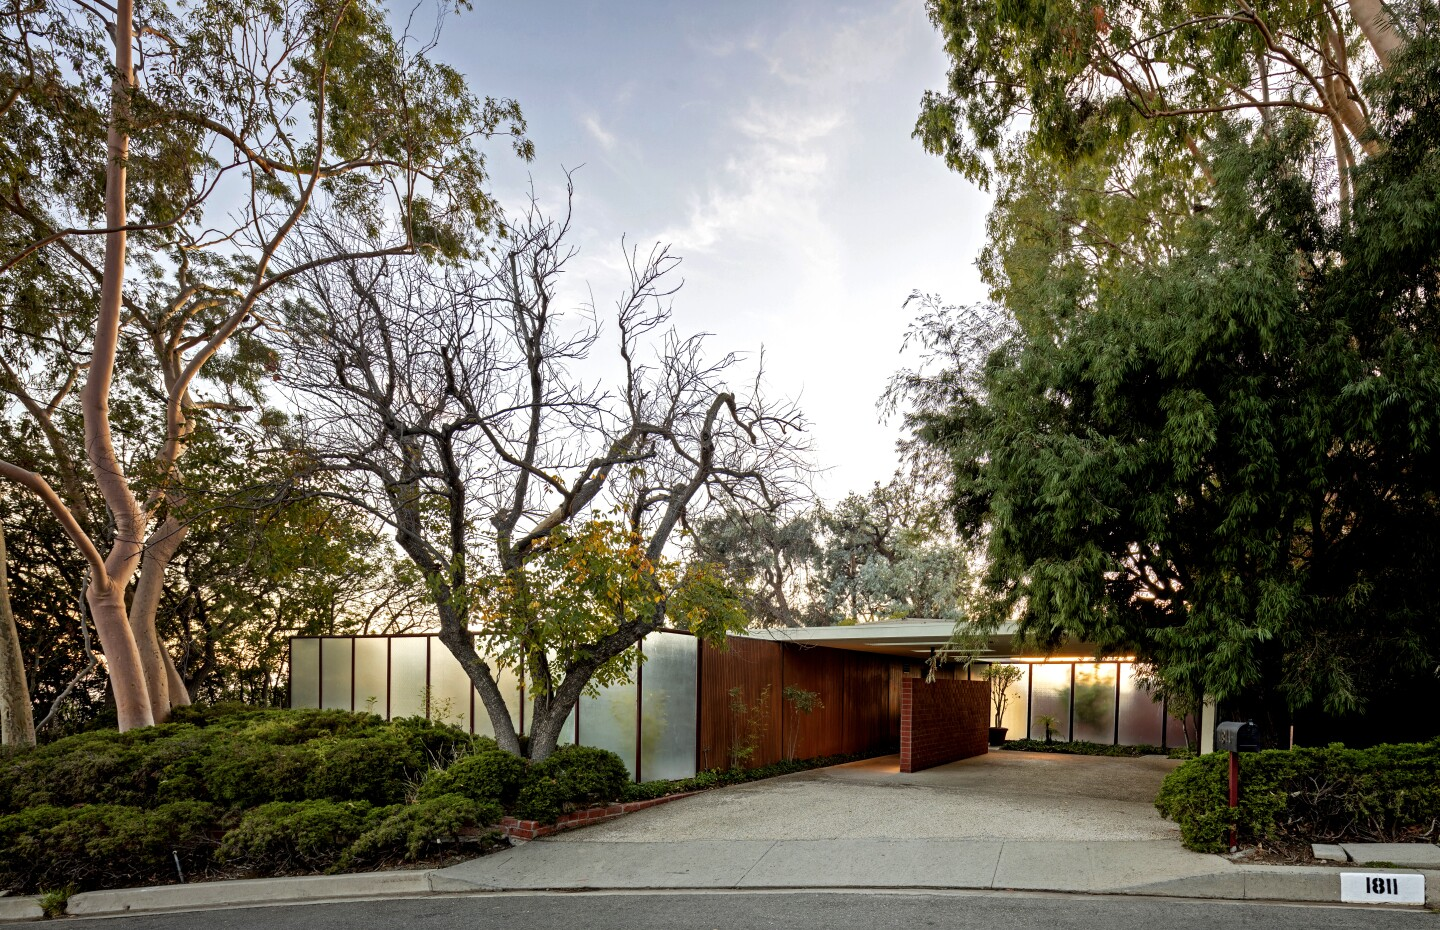 Case Study House No. 16 The home's simple wall of translucent panels shield bedrooms - a light-infused modernist ornament amid Bel Air's mash of mansions and pillared gates. (Matthew Momberger)